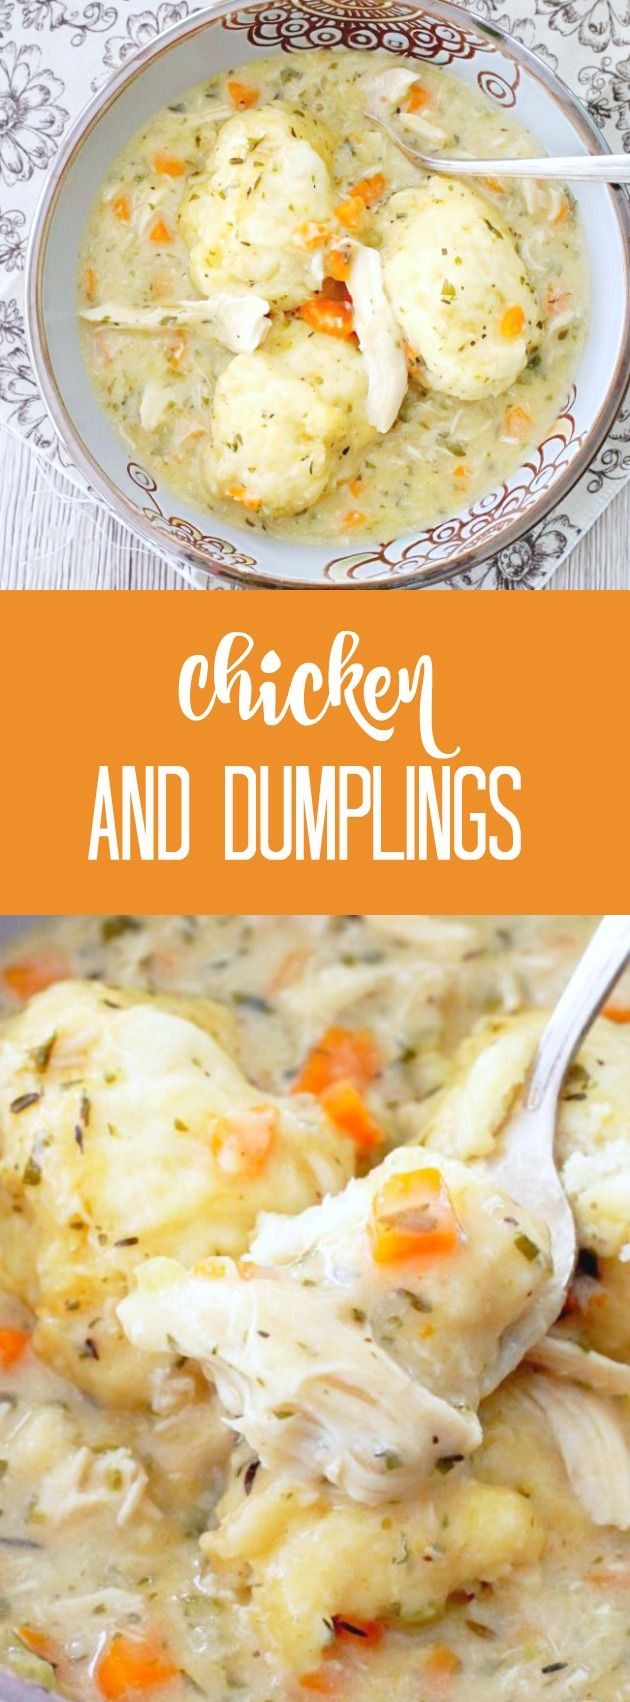 Simply Delicious Chicken and Dumplings https://uk.pinterest.com/furniturerattan/rattan-storage-housing-and-garden-accessories/